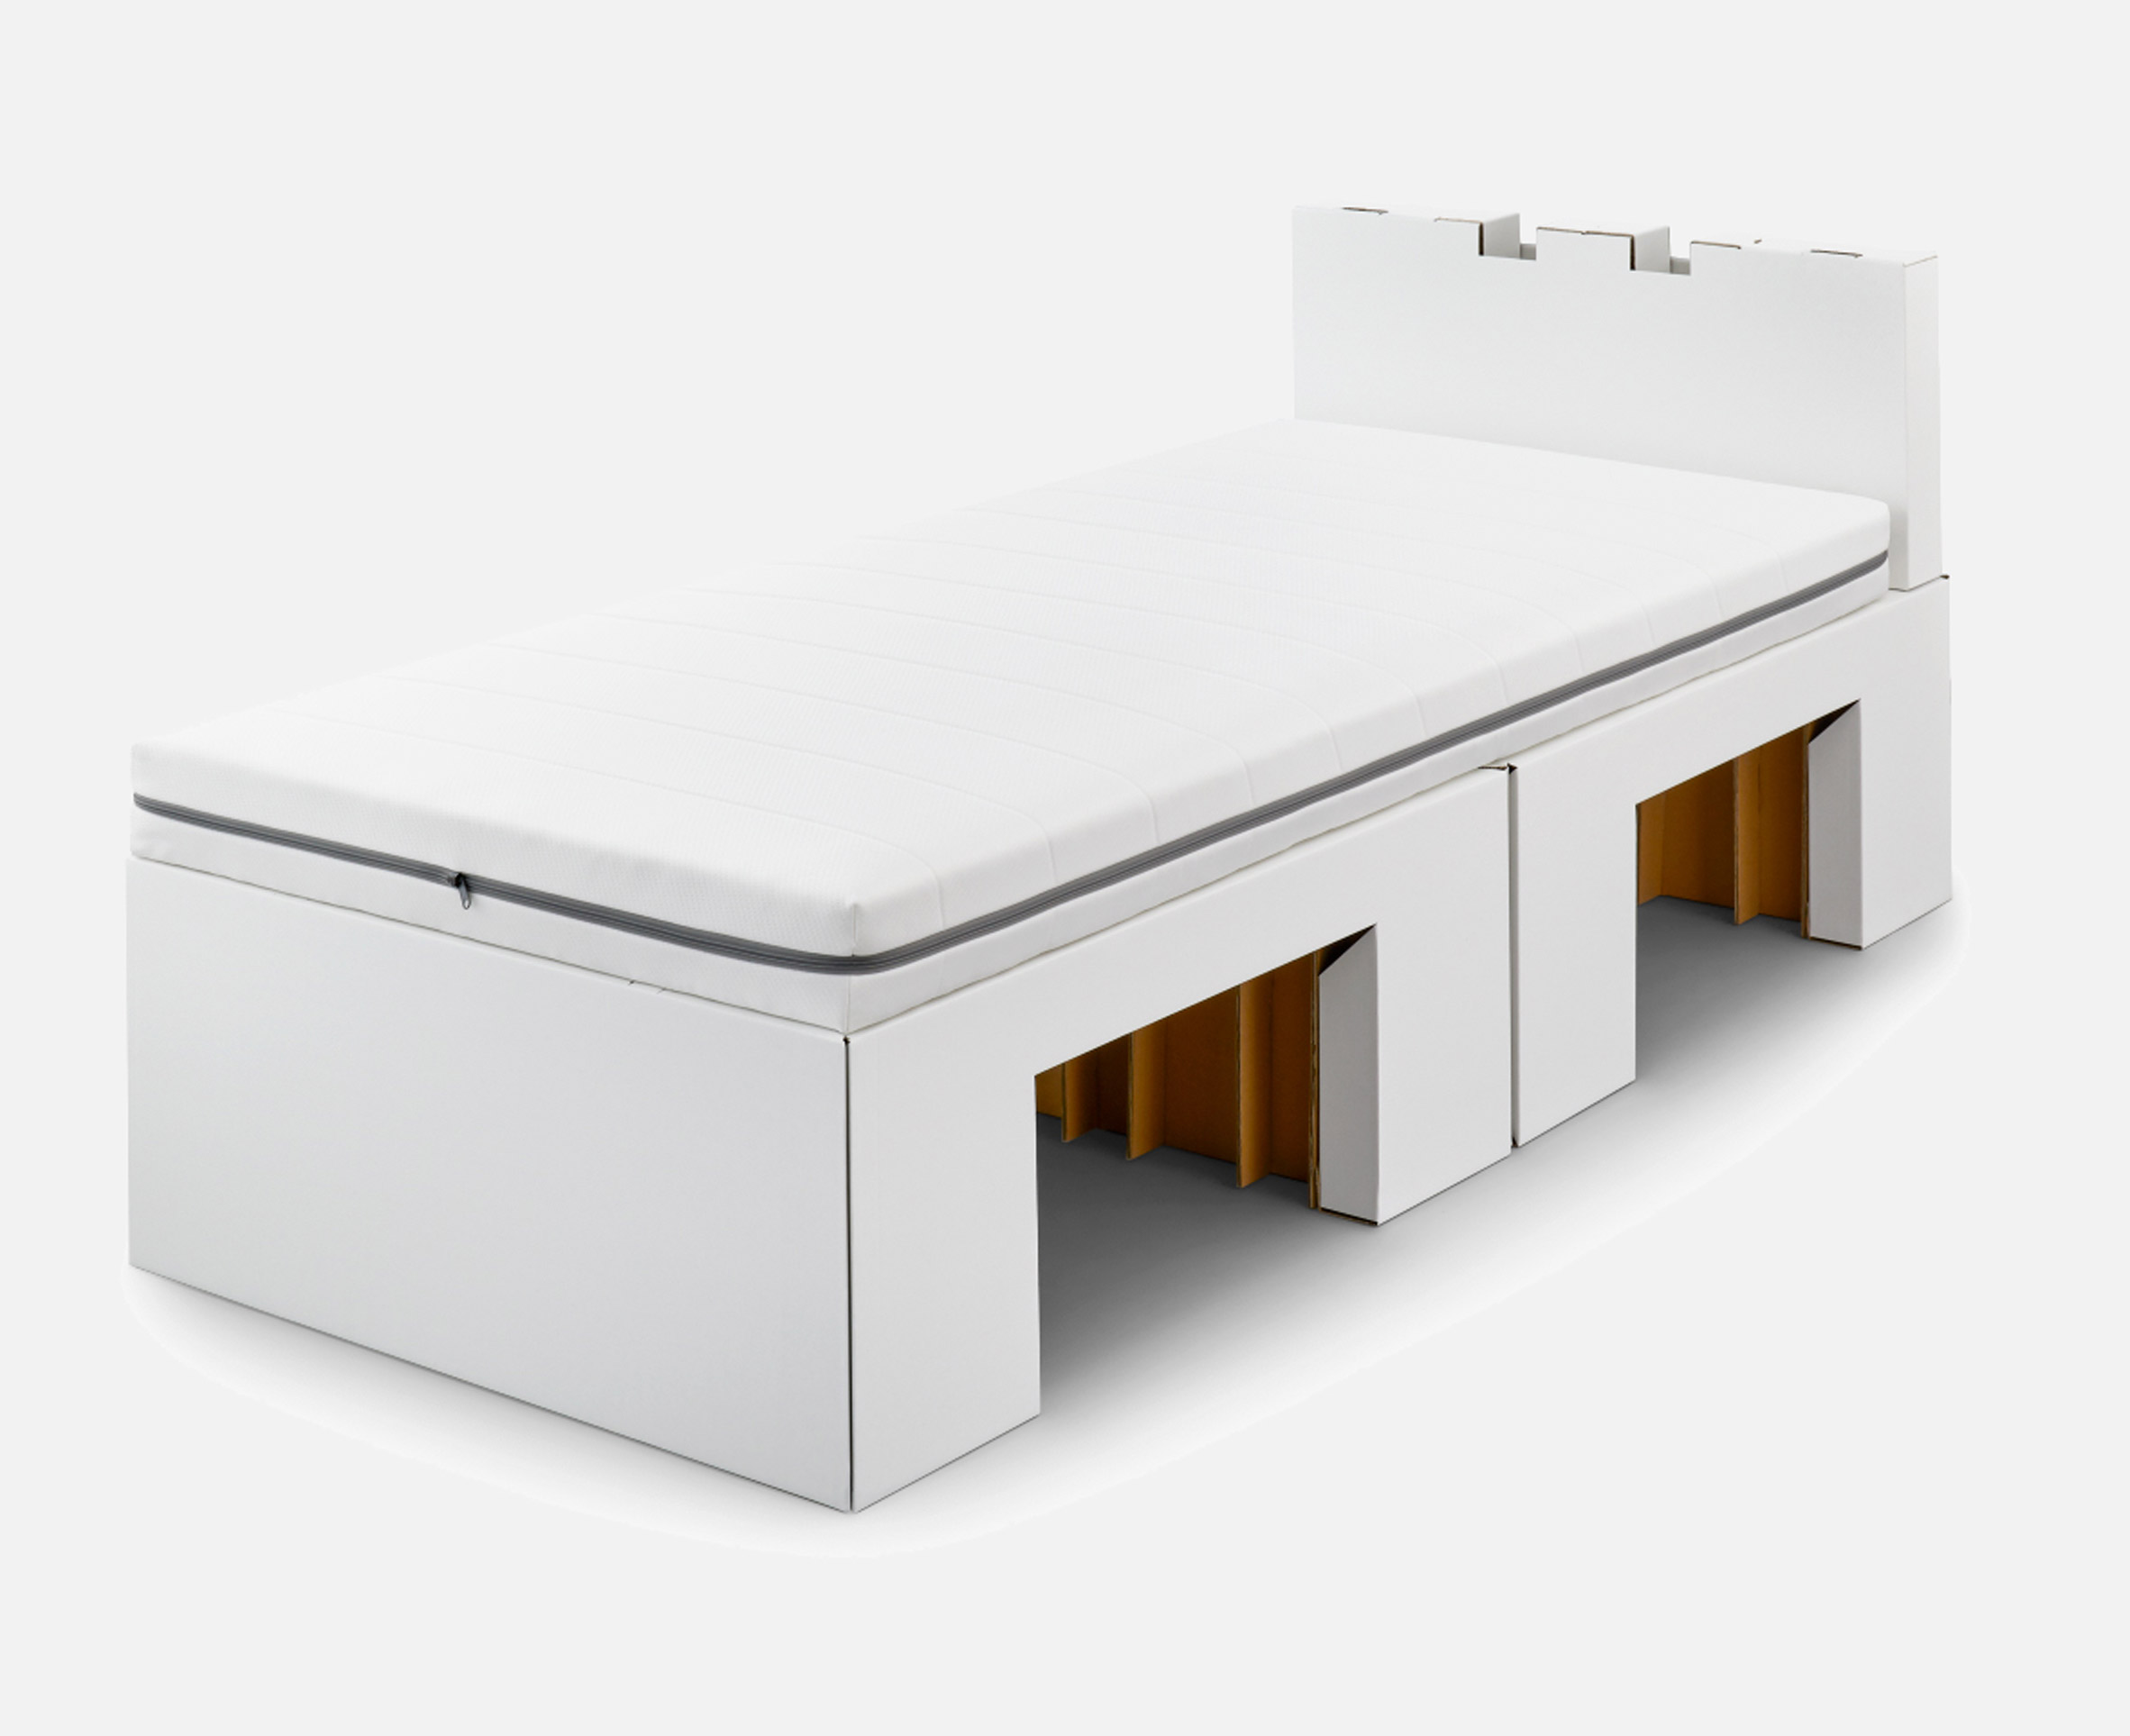 A white cardboard bed and mattress by Airweave